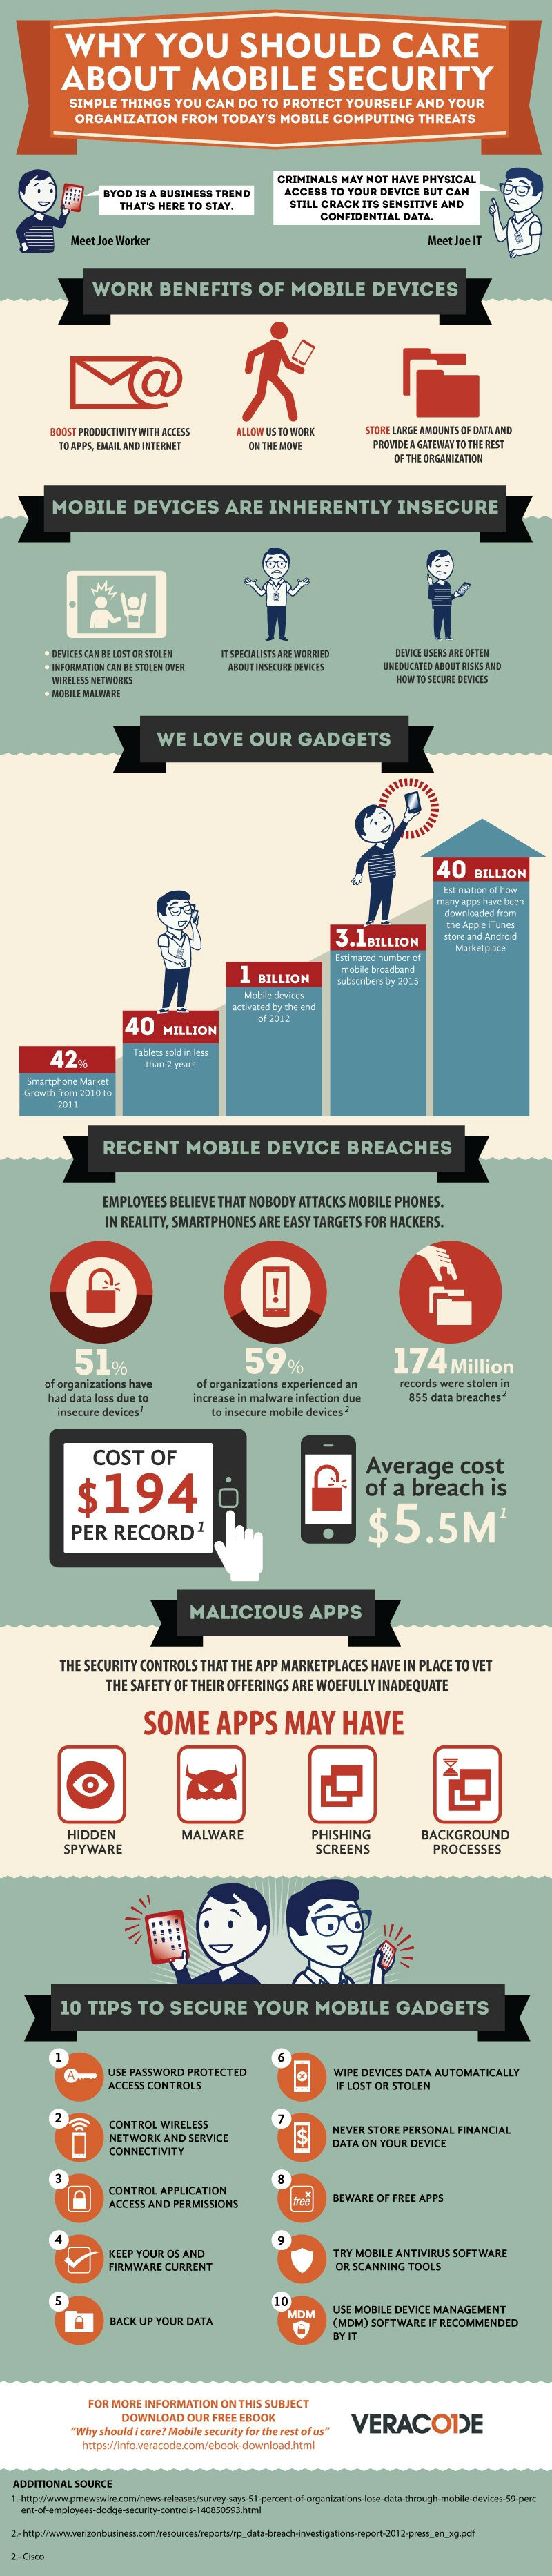 Infographic: Why mobile security matters